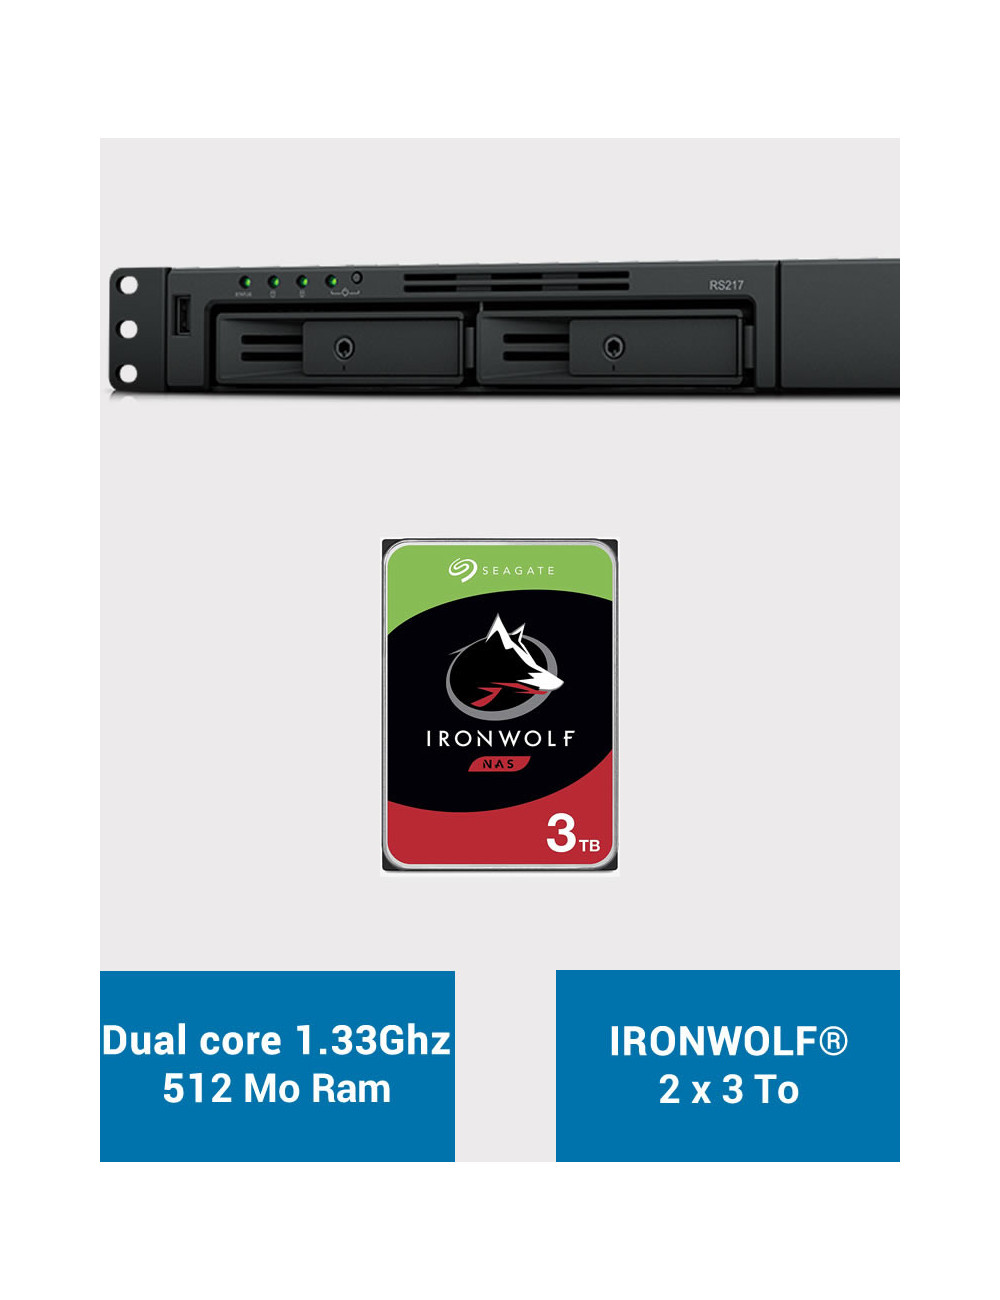 Synology RS217 Serveur NAS IRONWOLF 6To (2x3To)